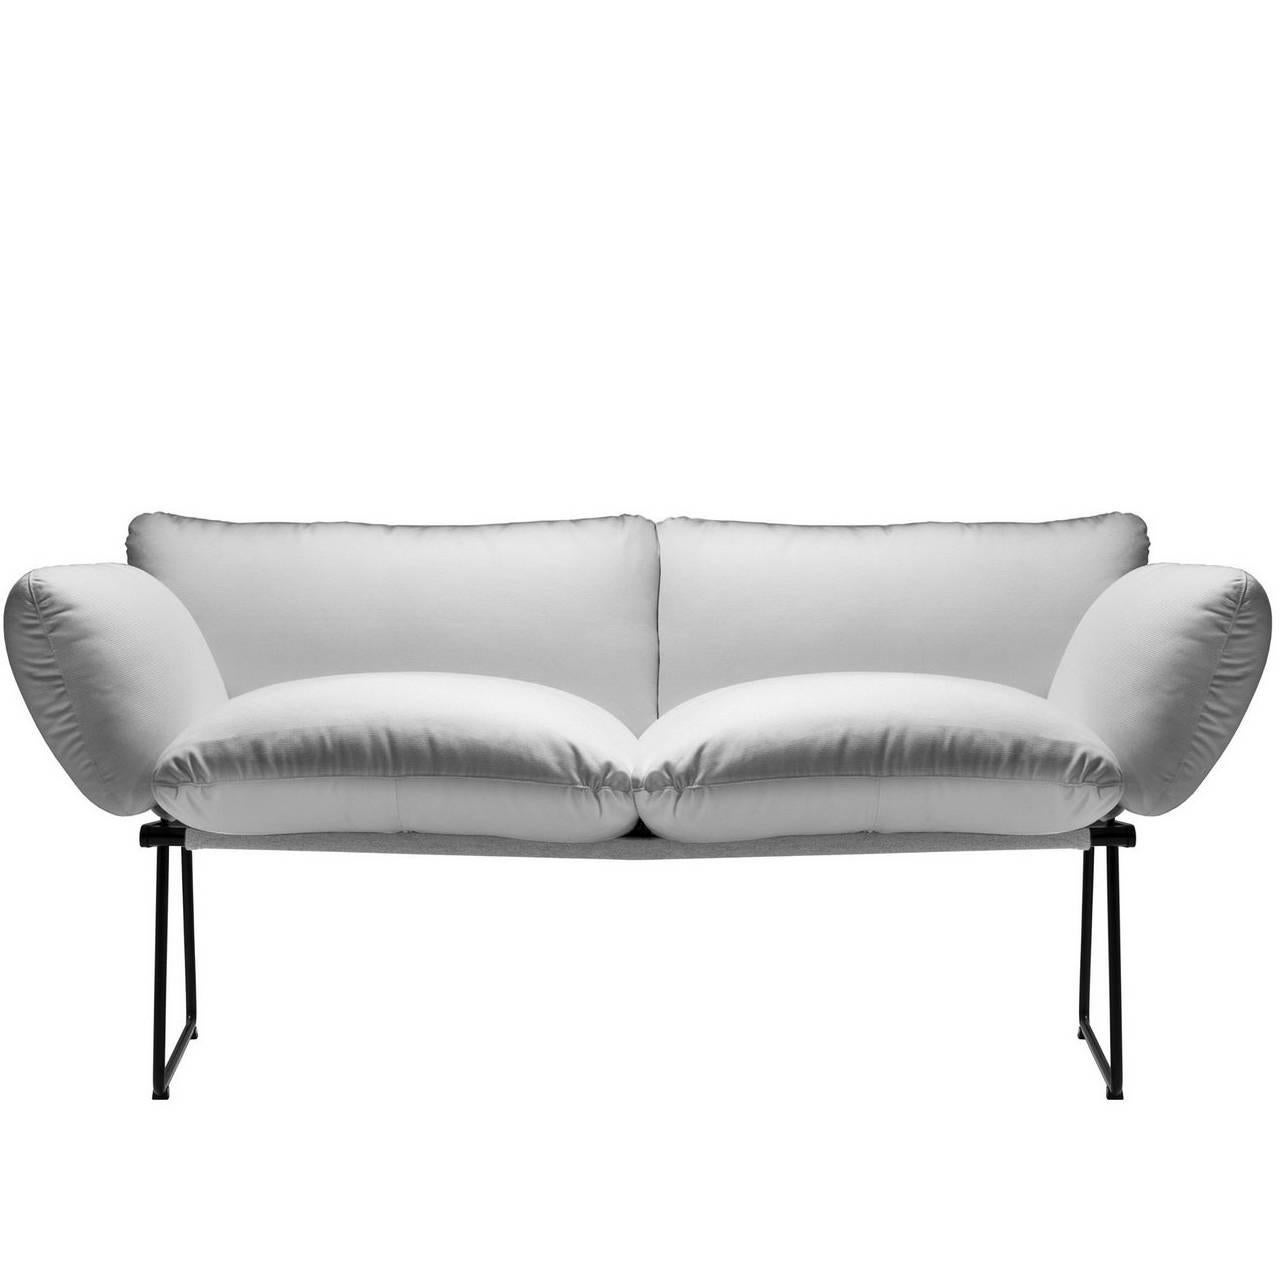 """""""Elisa"""" Outdoor Two-Seat Sofa Designed by Enzo Mari for Driade"""